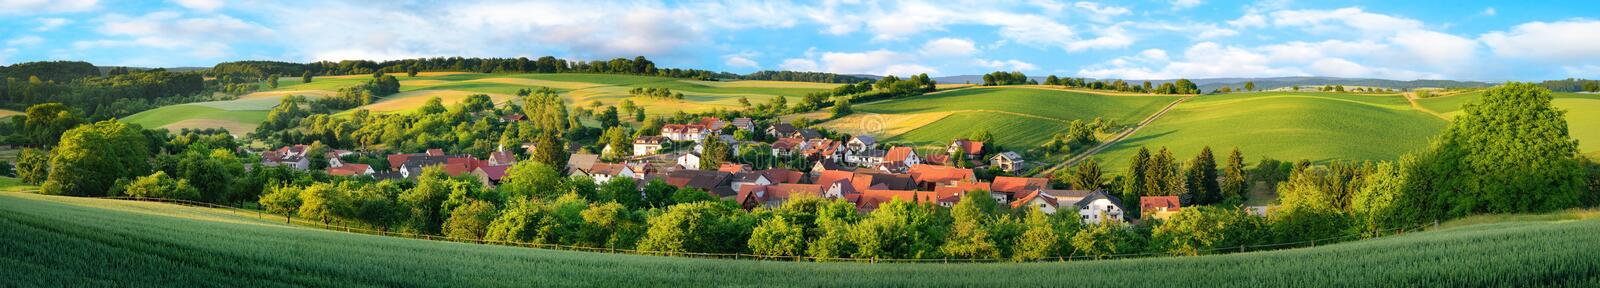 Download Panorama Of A Small Village Surrounded By Green Hills Stock Photo - Image of horizon, fields: 55862986